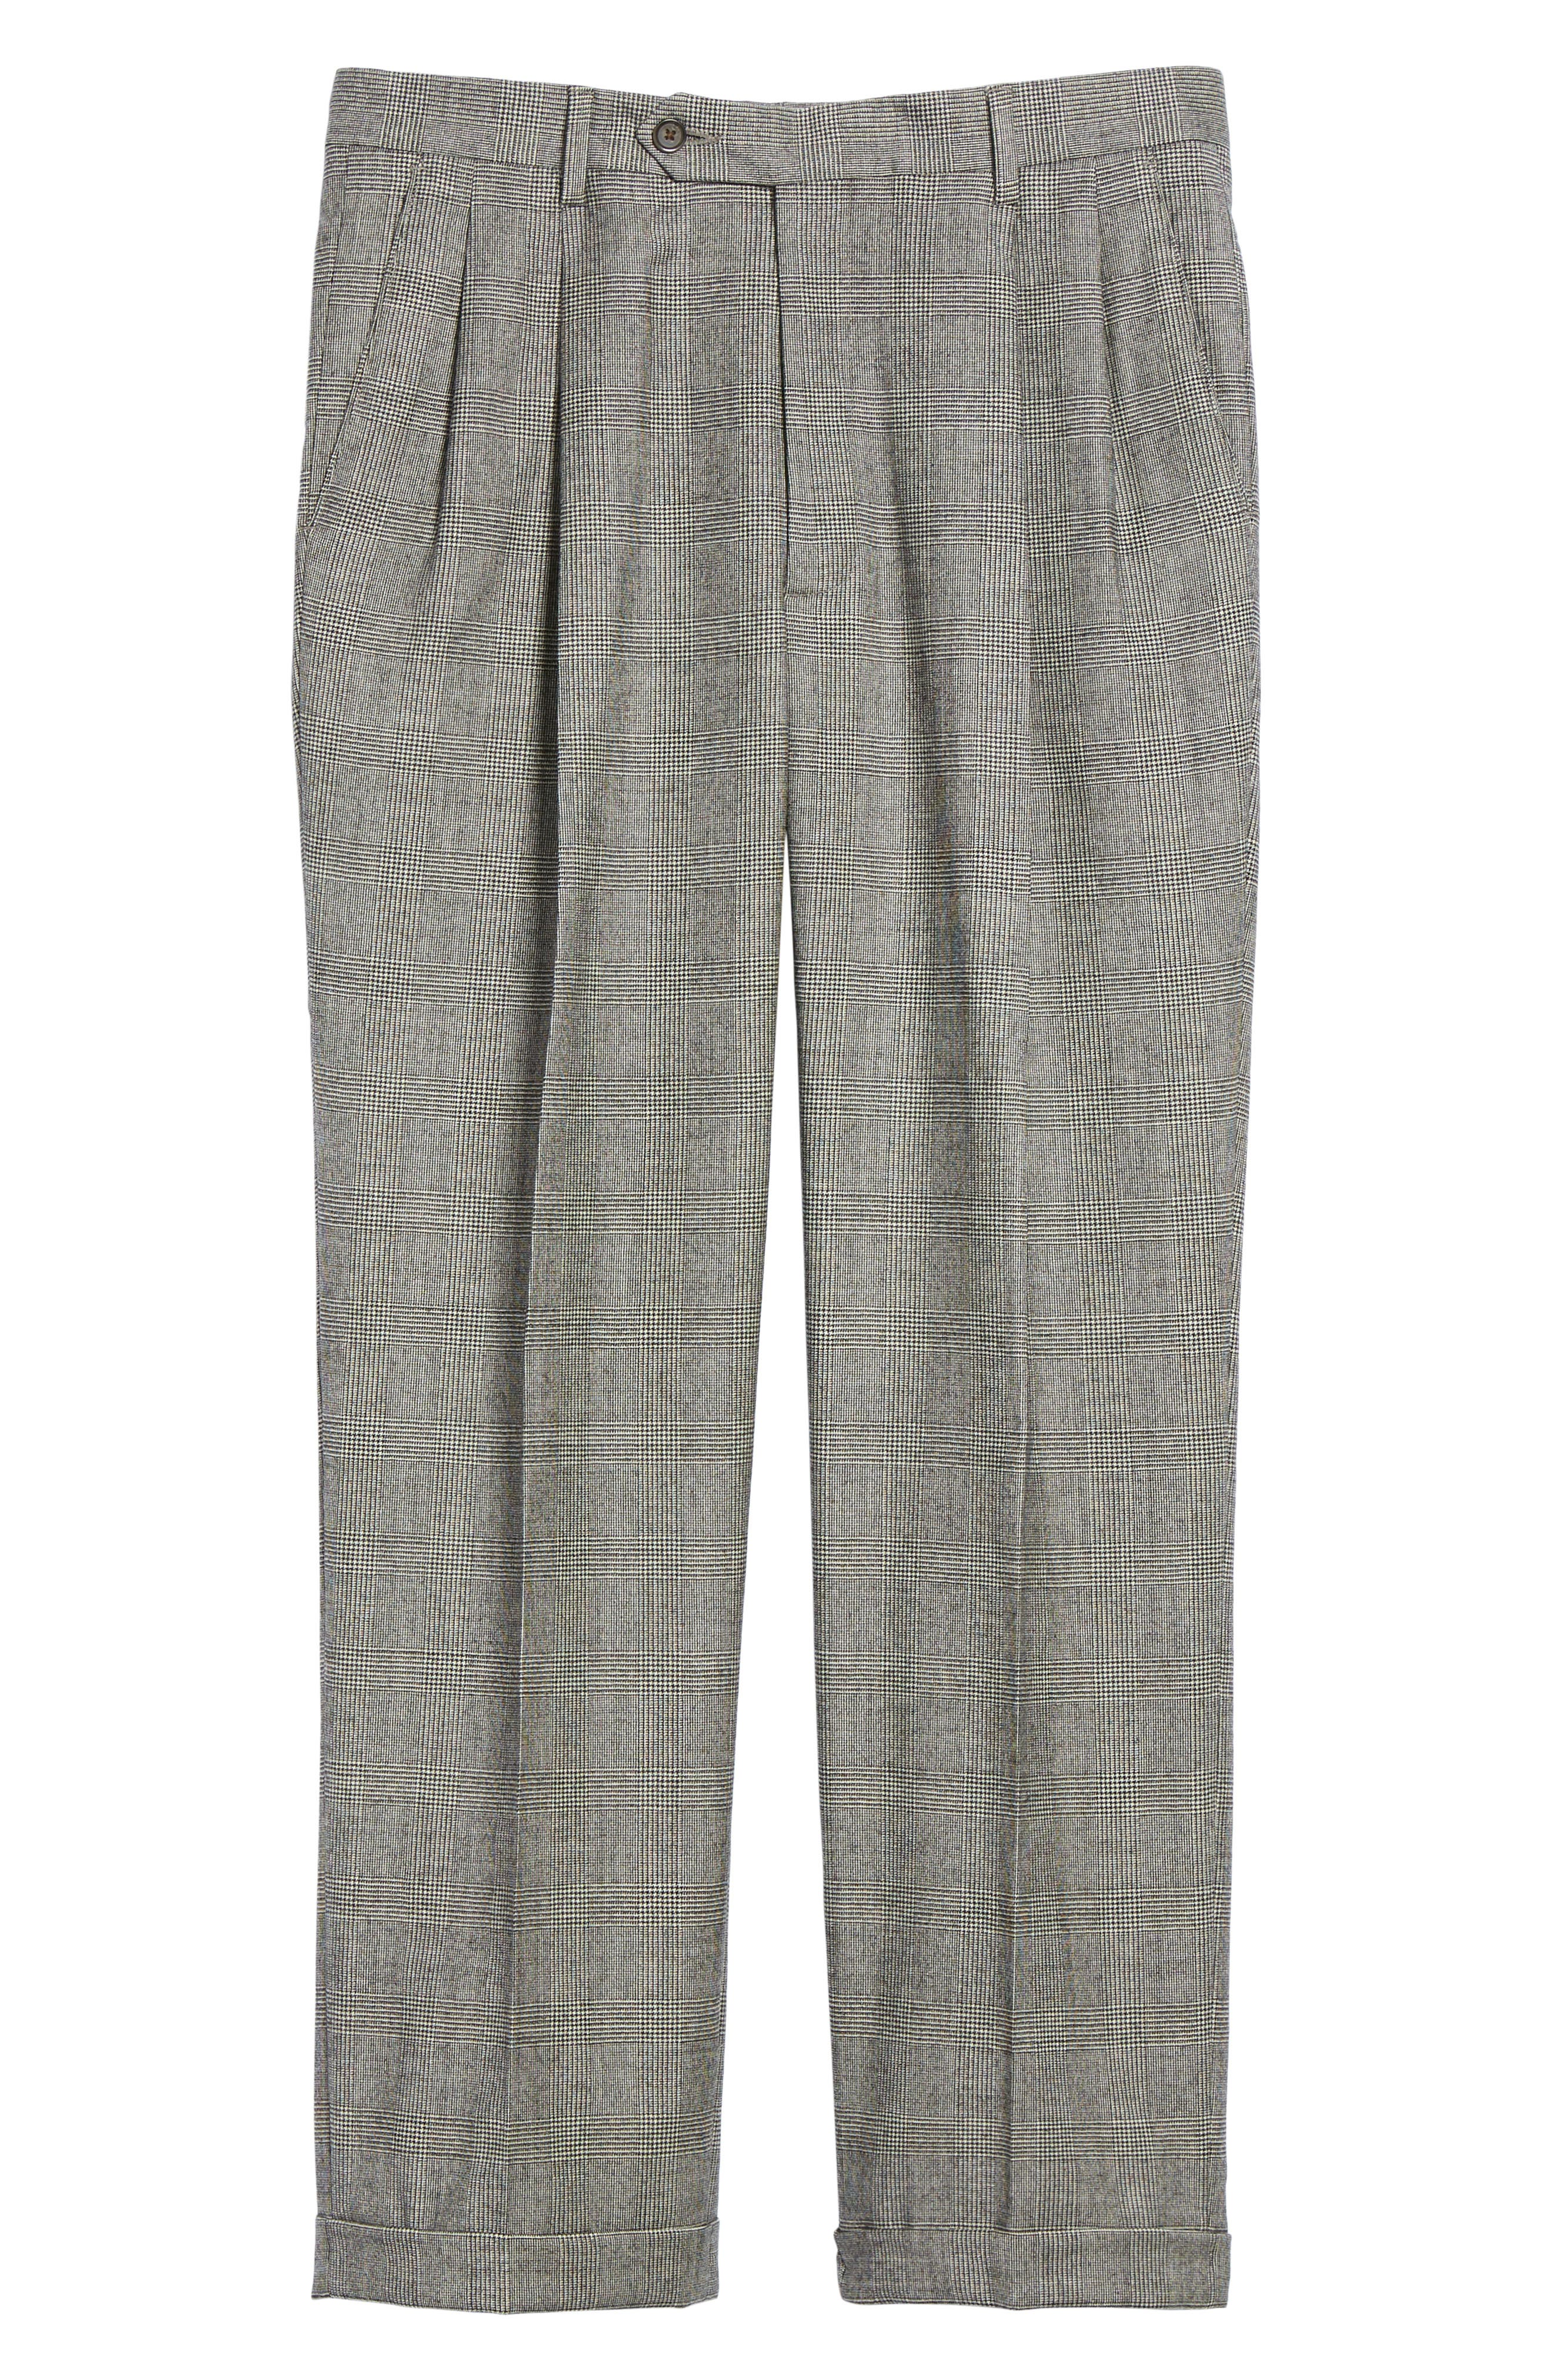 Pleated Stretch Plaid Wool Trousers,                             Alternate thumbnail 6, color,                             BLACK/ WHITE